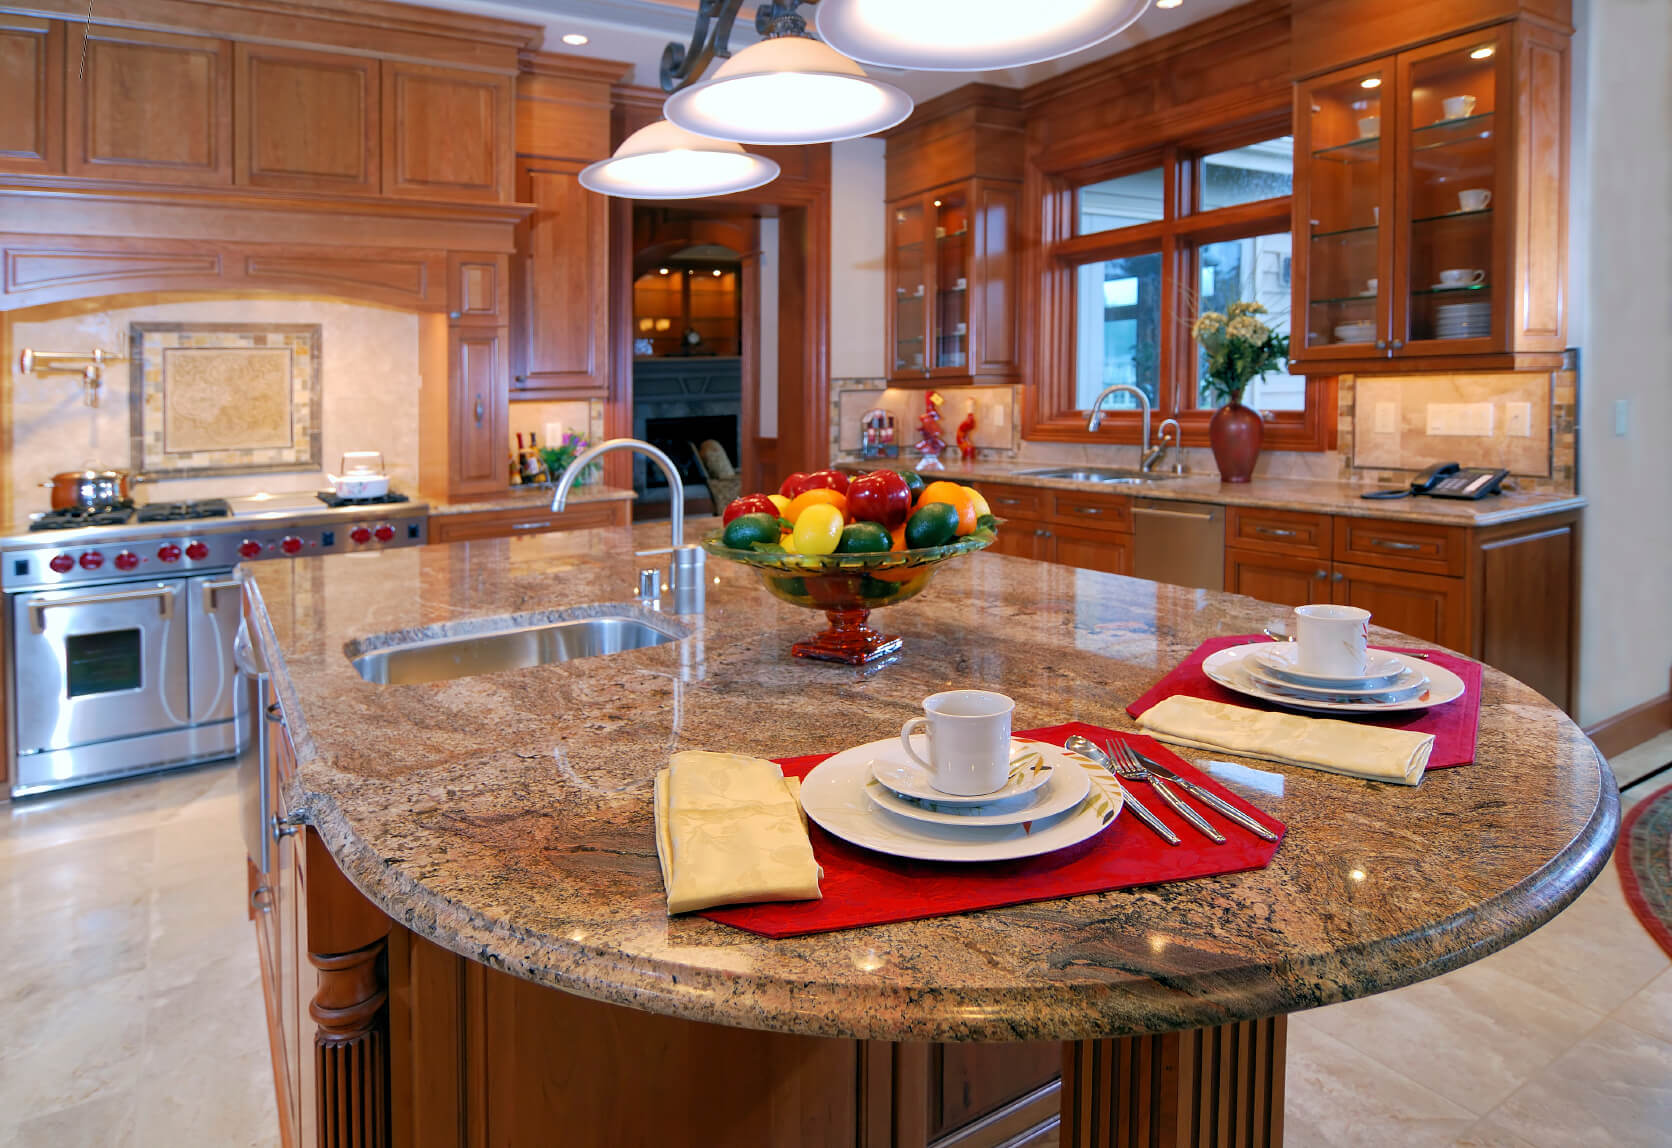 Rich patterned marble countertop extends to round dining space on this natural wood island.